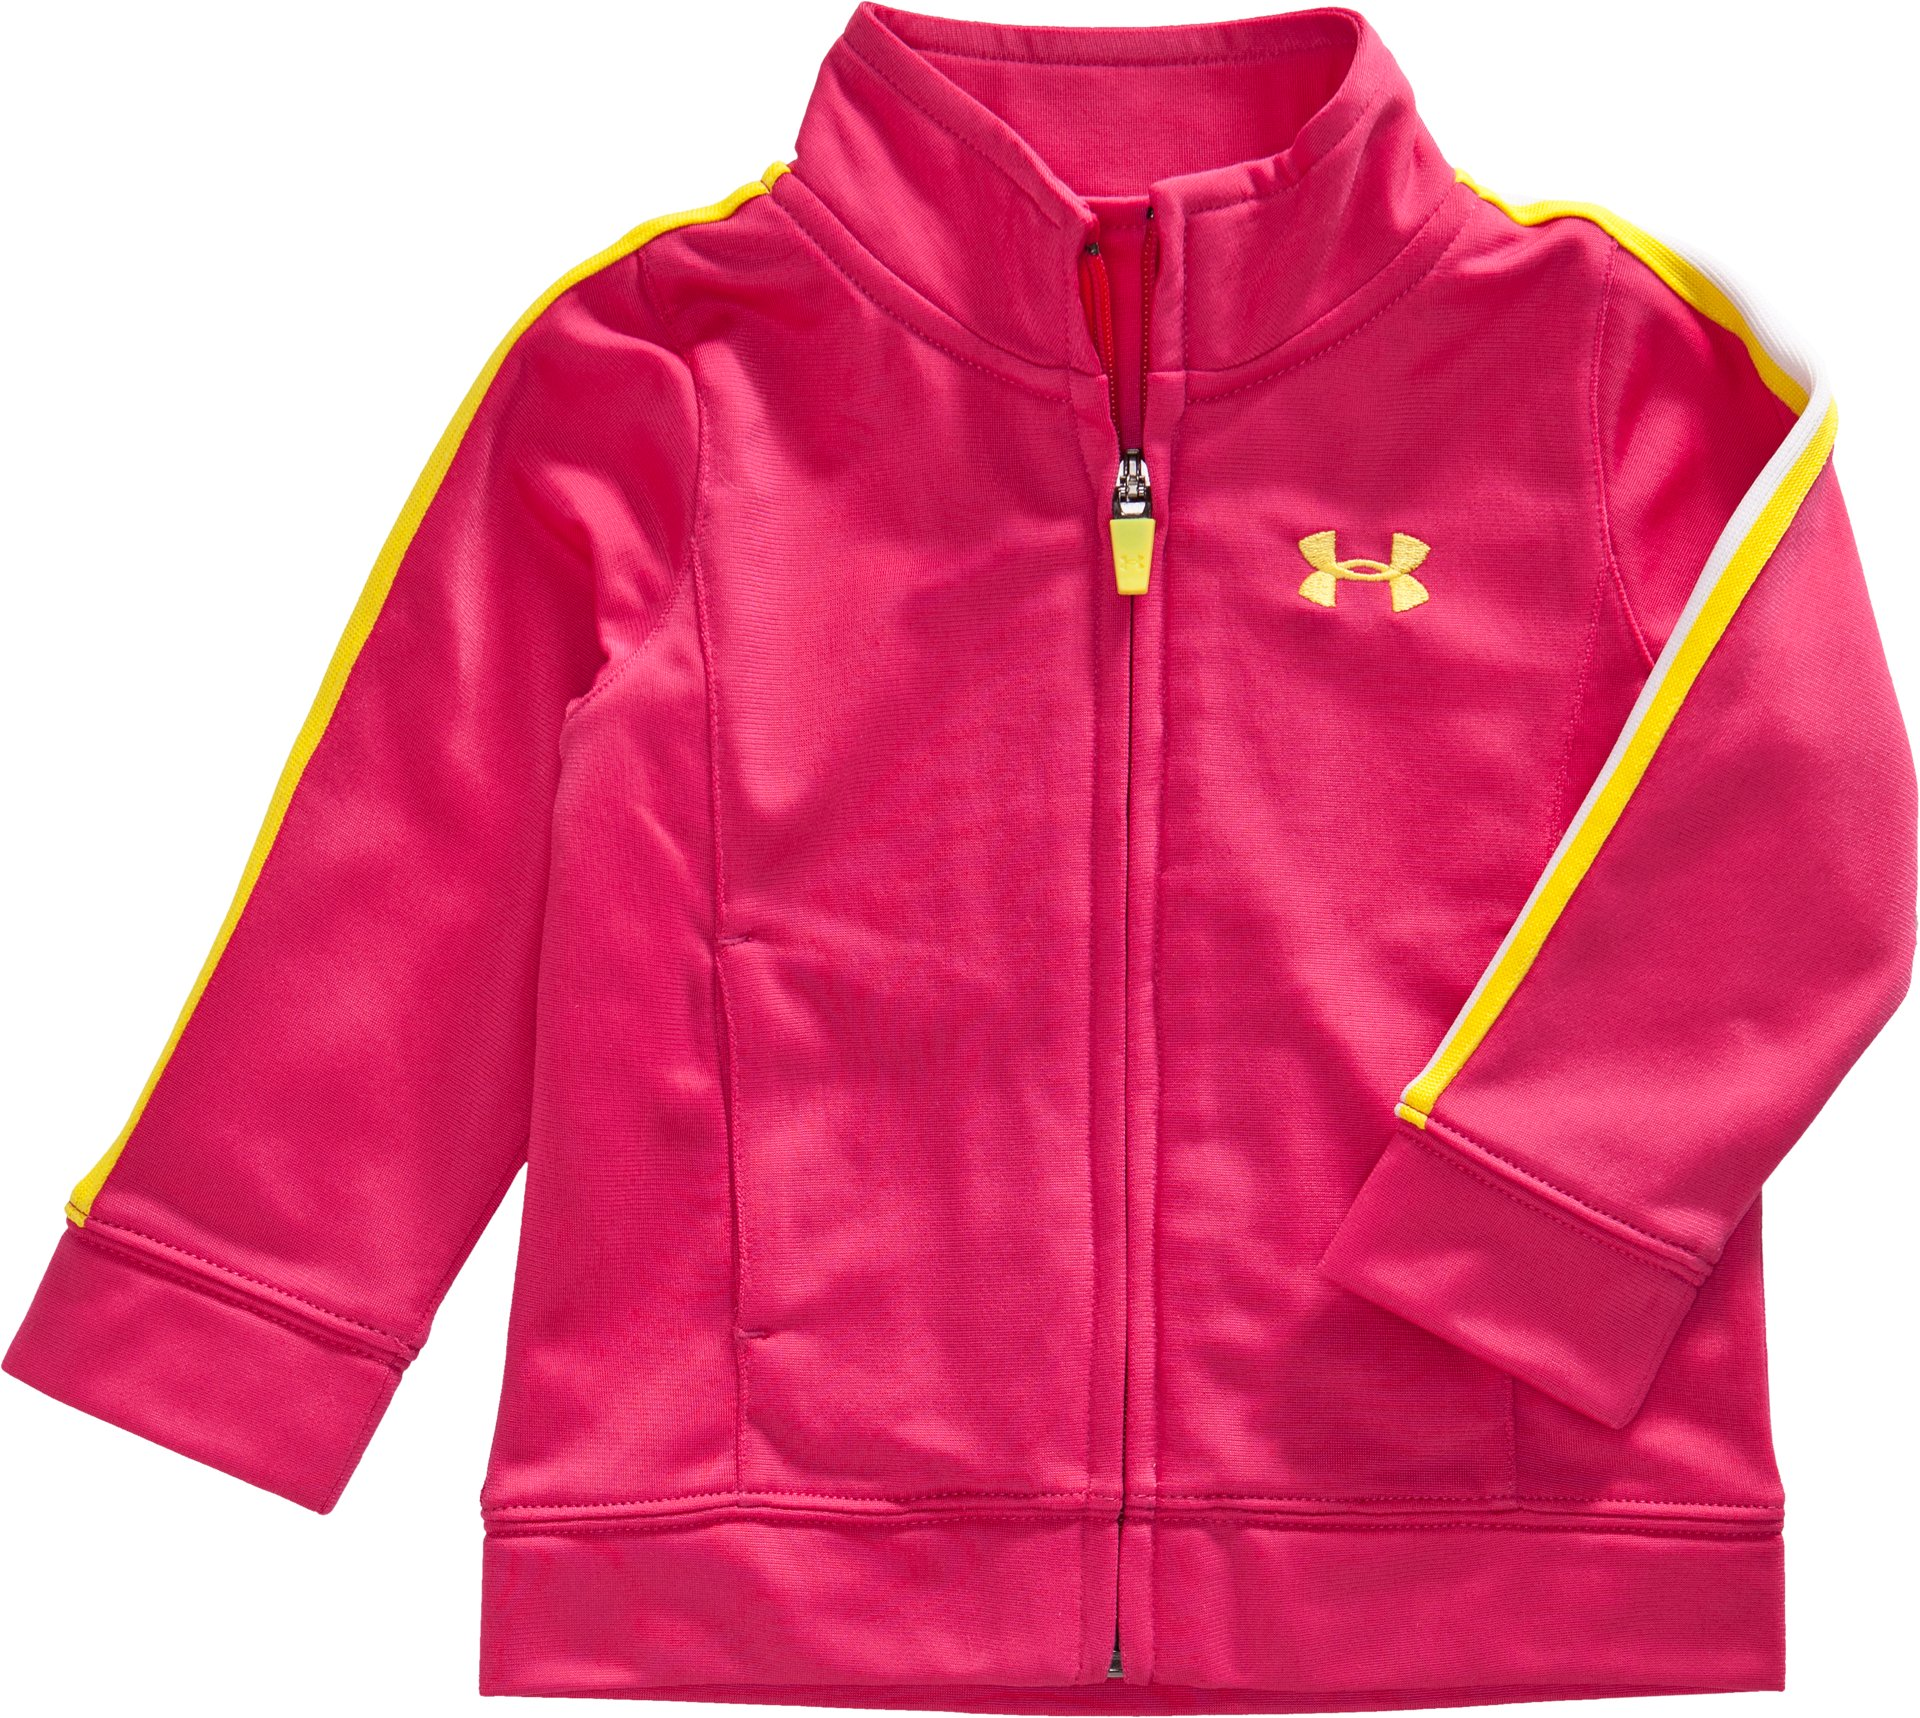 Girls' 4-7 UA Tricot Track Jacket, Gloss, zoomed image